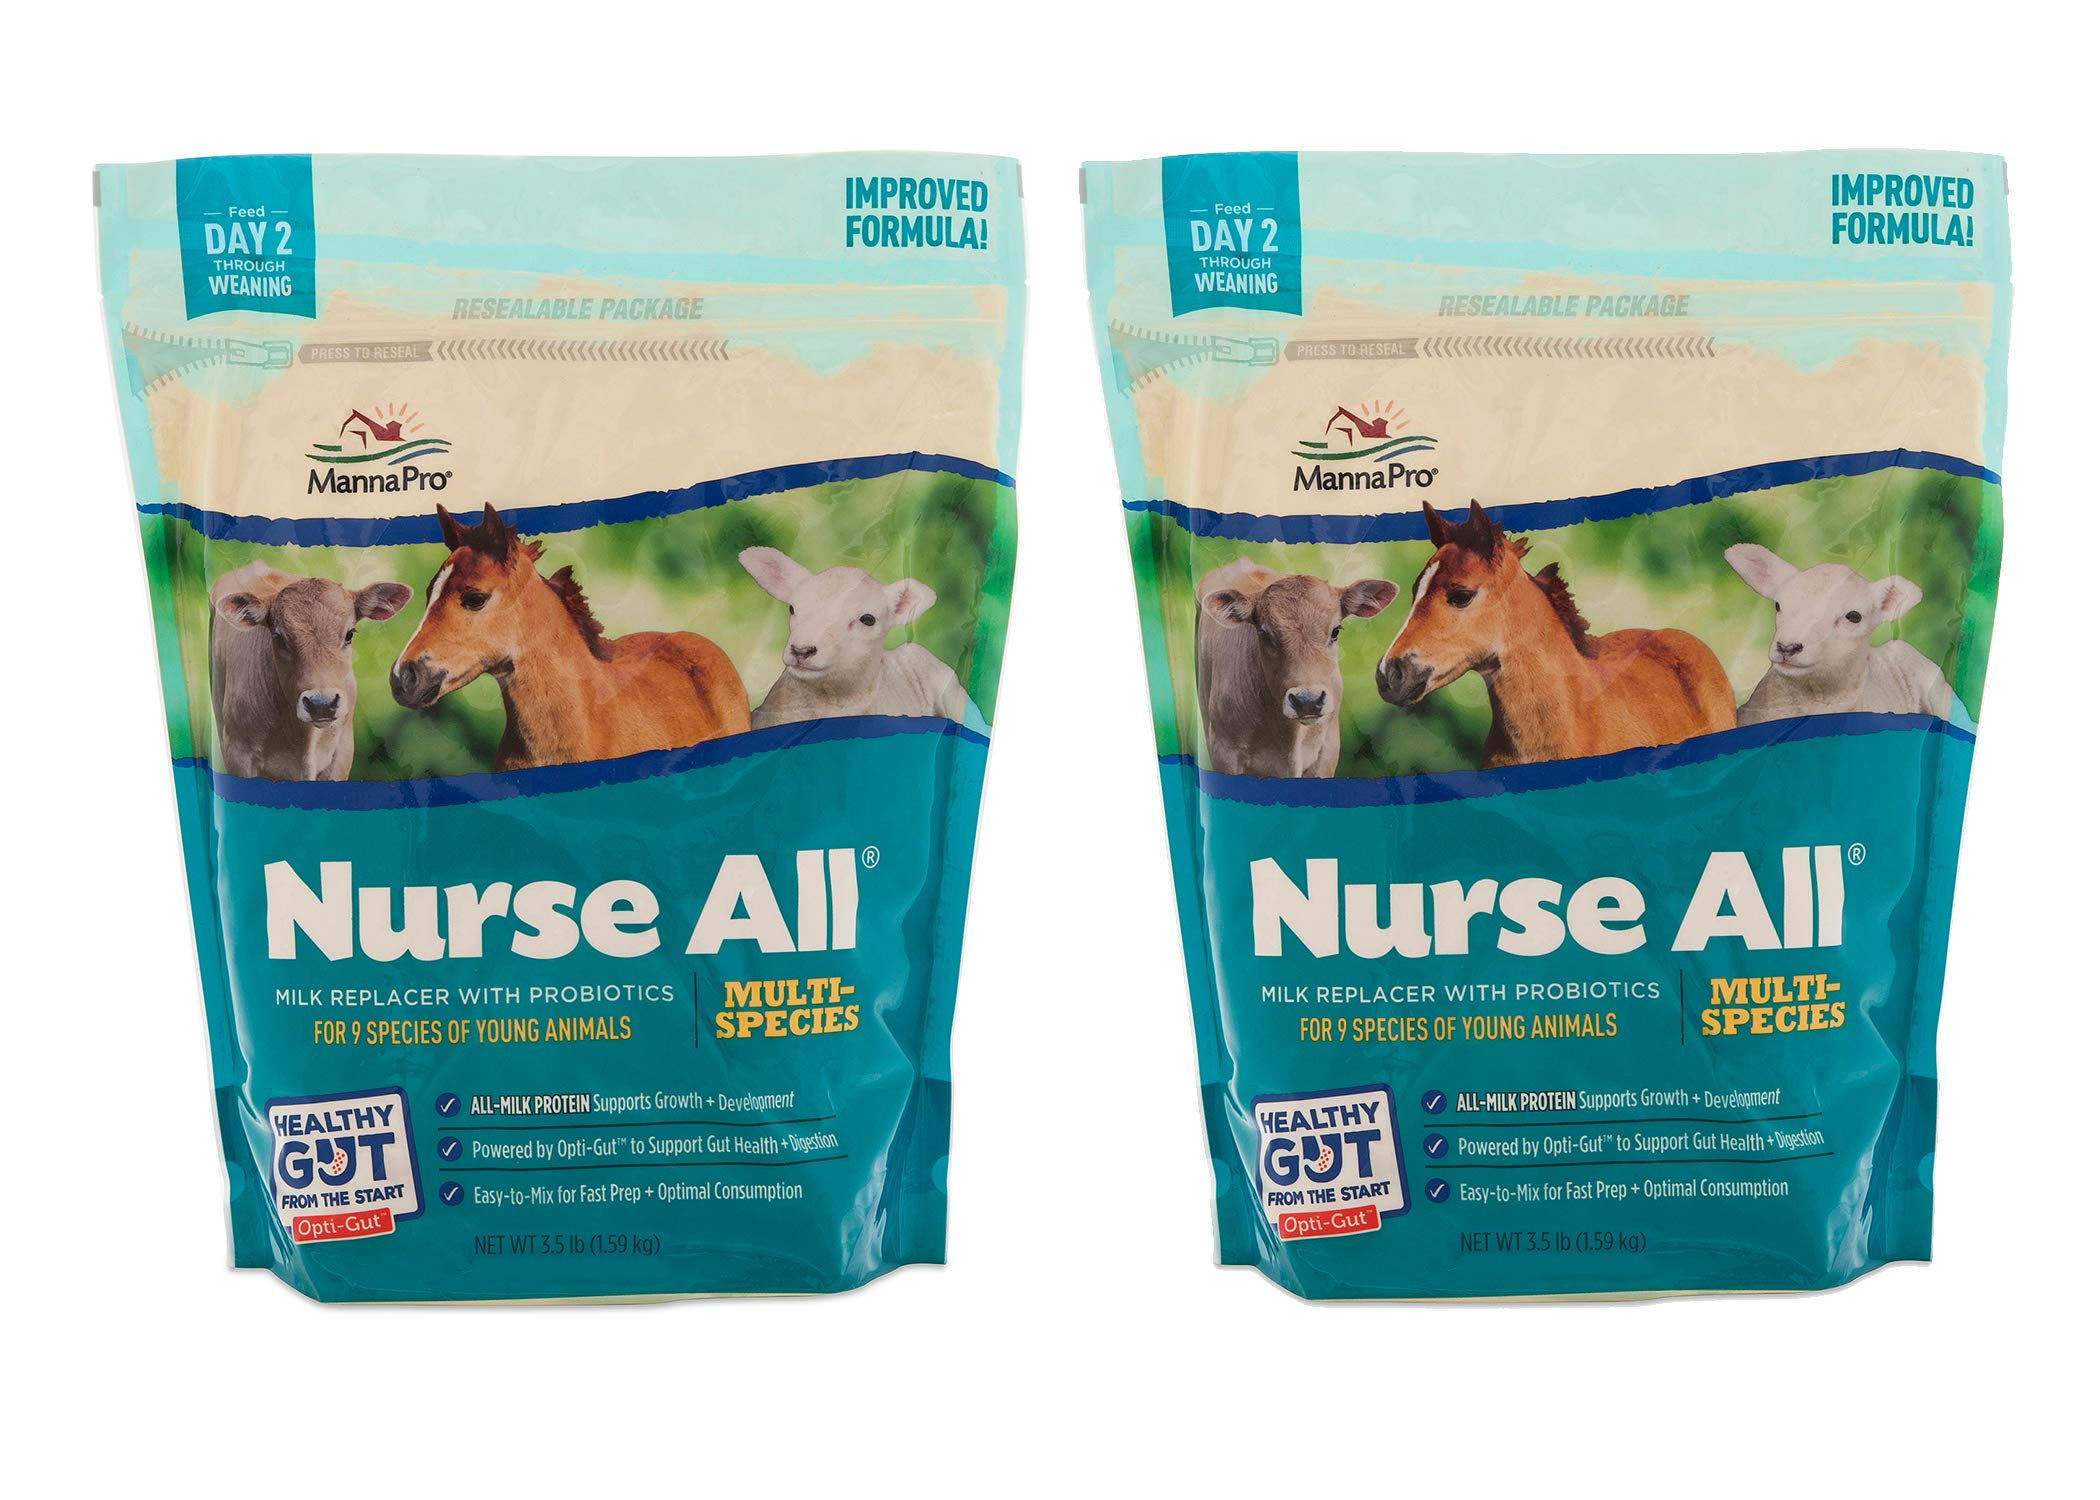 Manna Pro NurseAll Non-Medicated Milk Replacer, 3.5 lb (Pack of 2) by Manna Pro